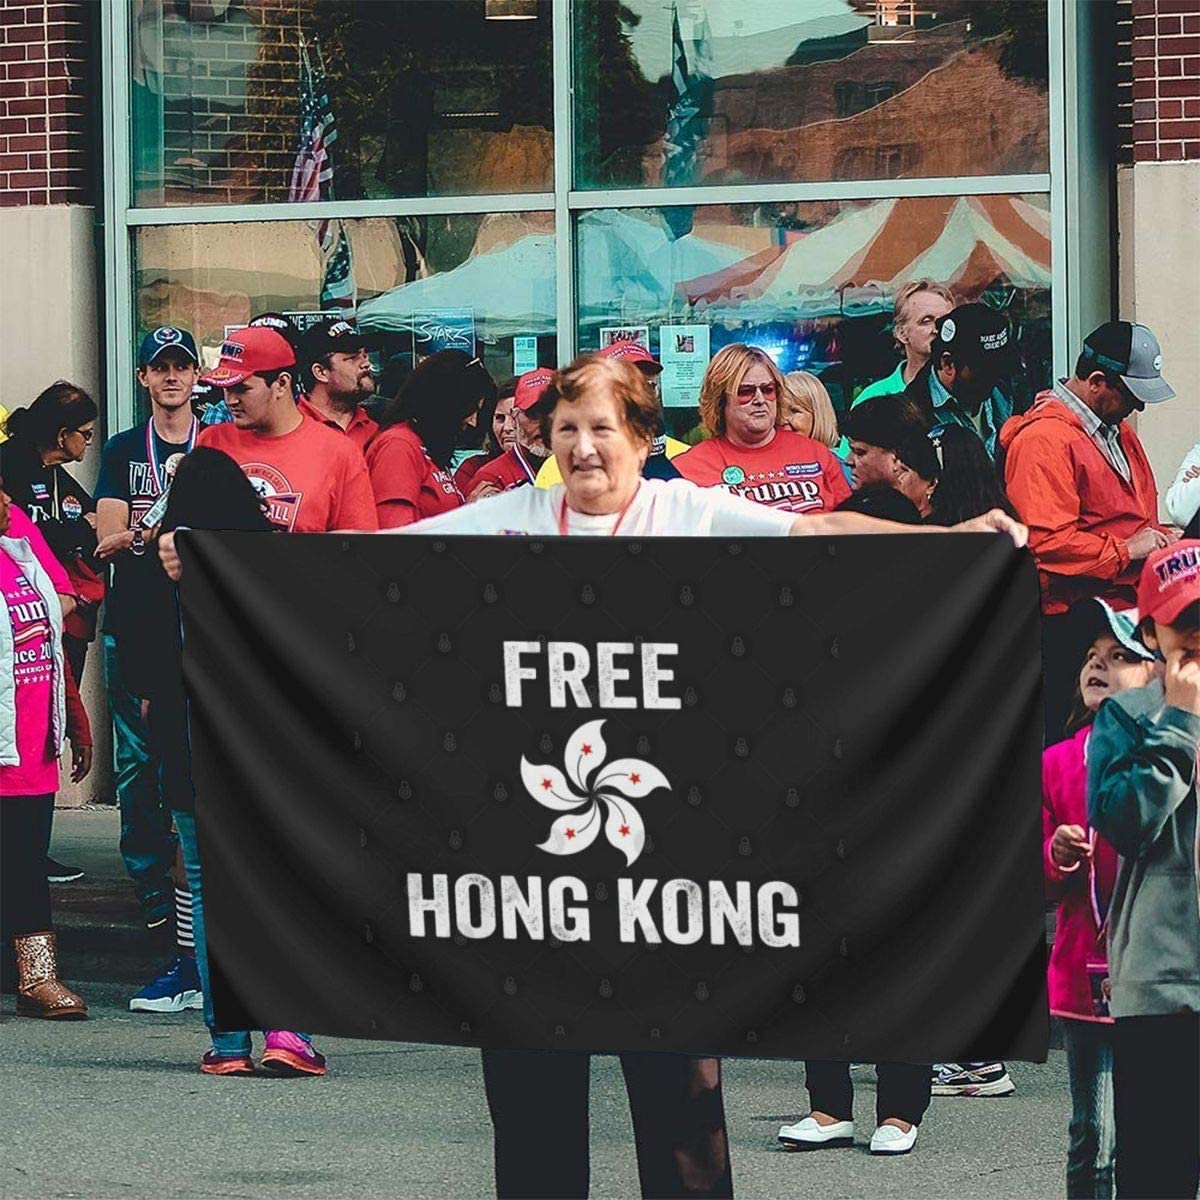 5in Banner Flags Emonye Support Free Hong Kong Democracy Protest Flag,3